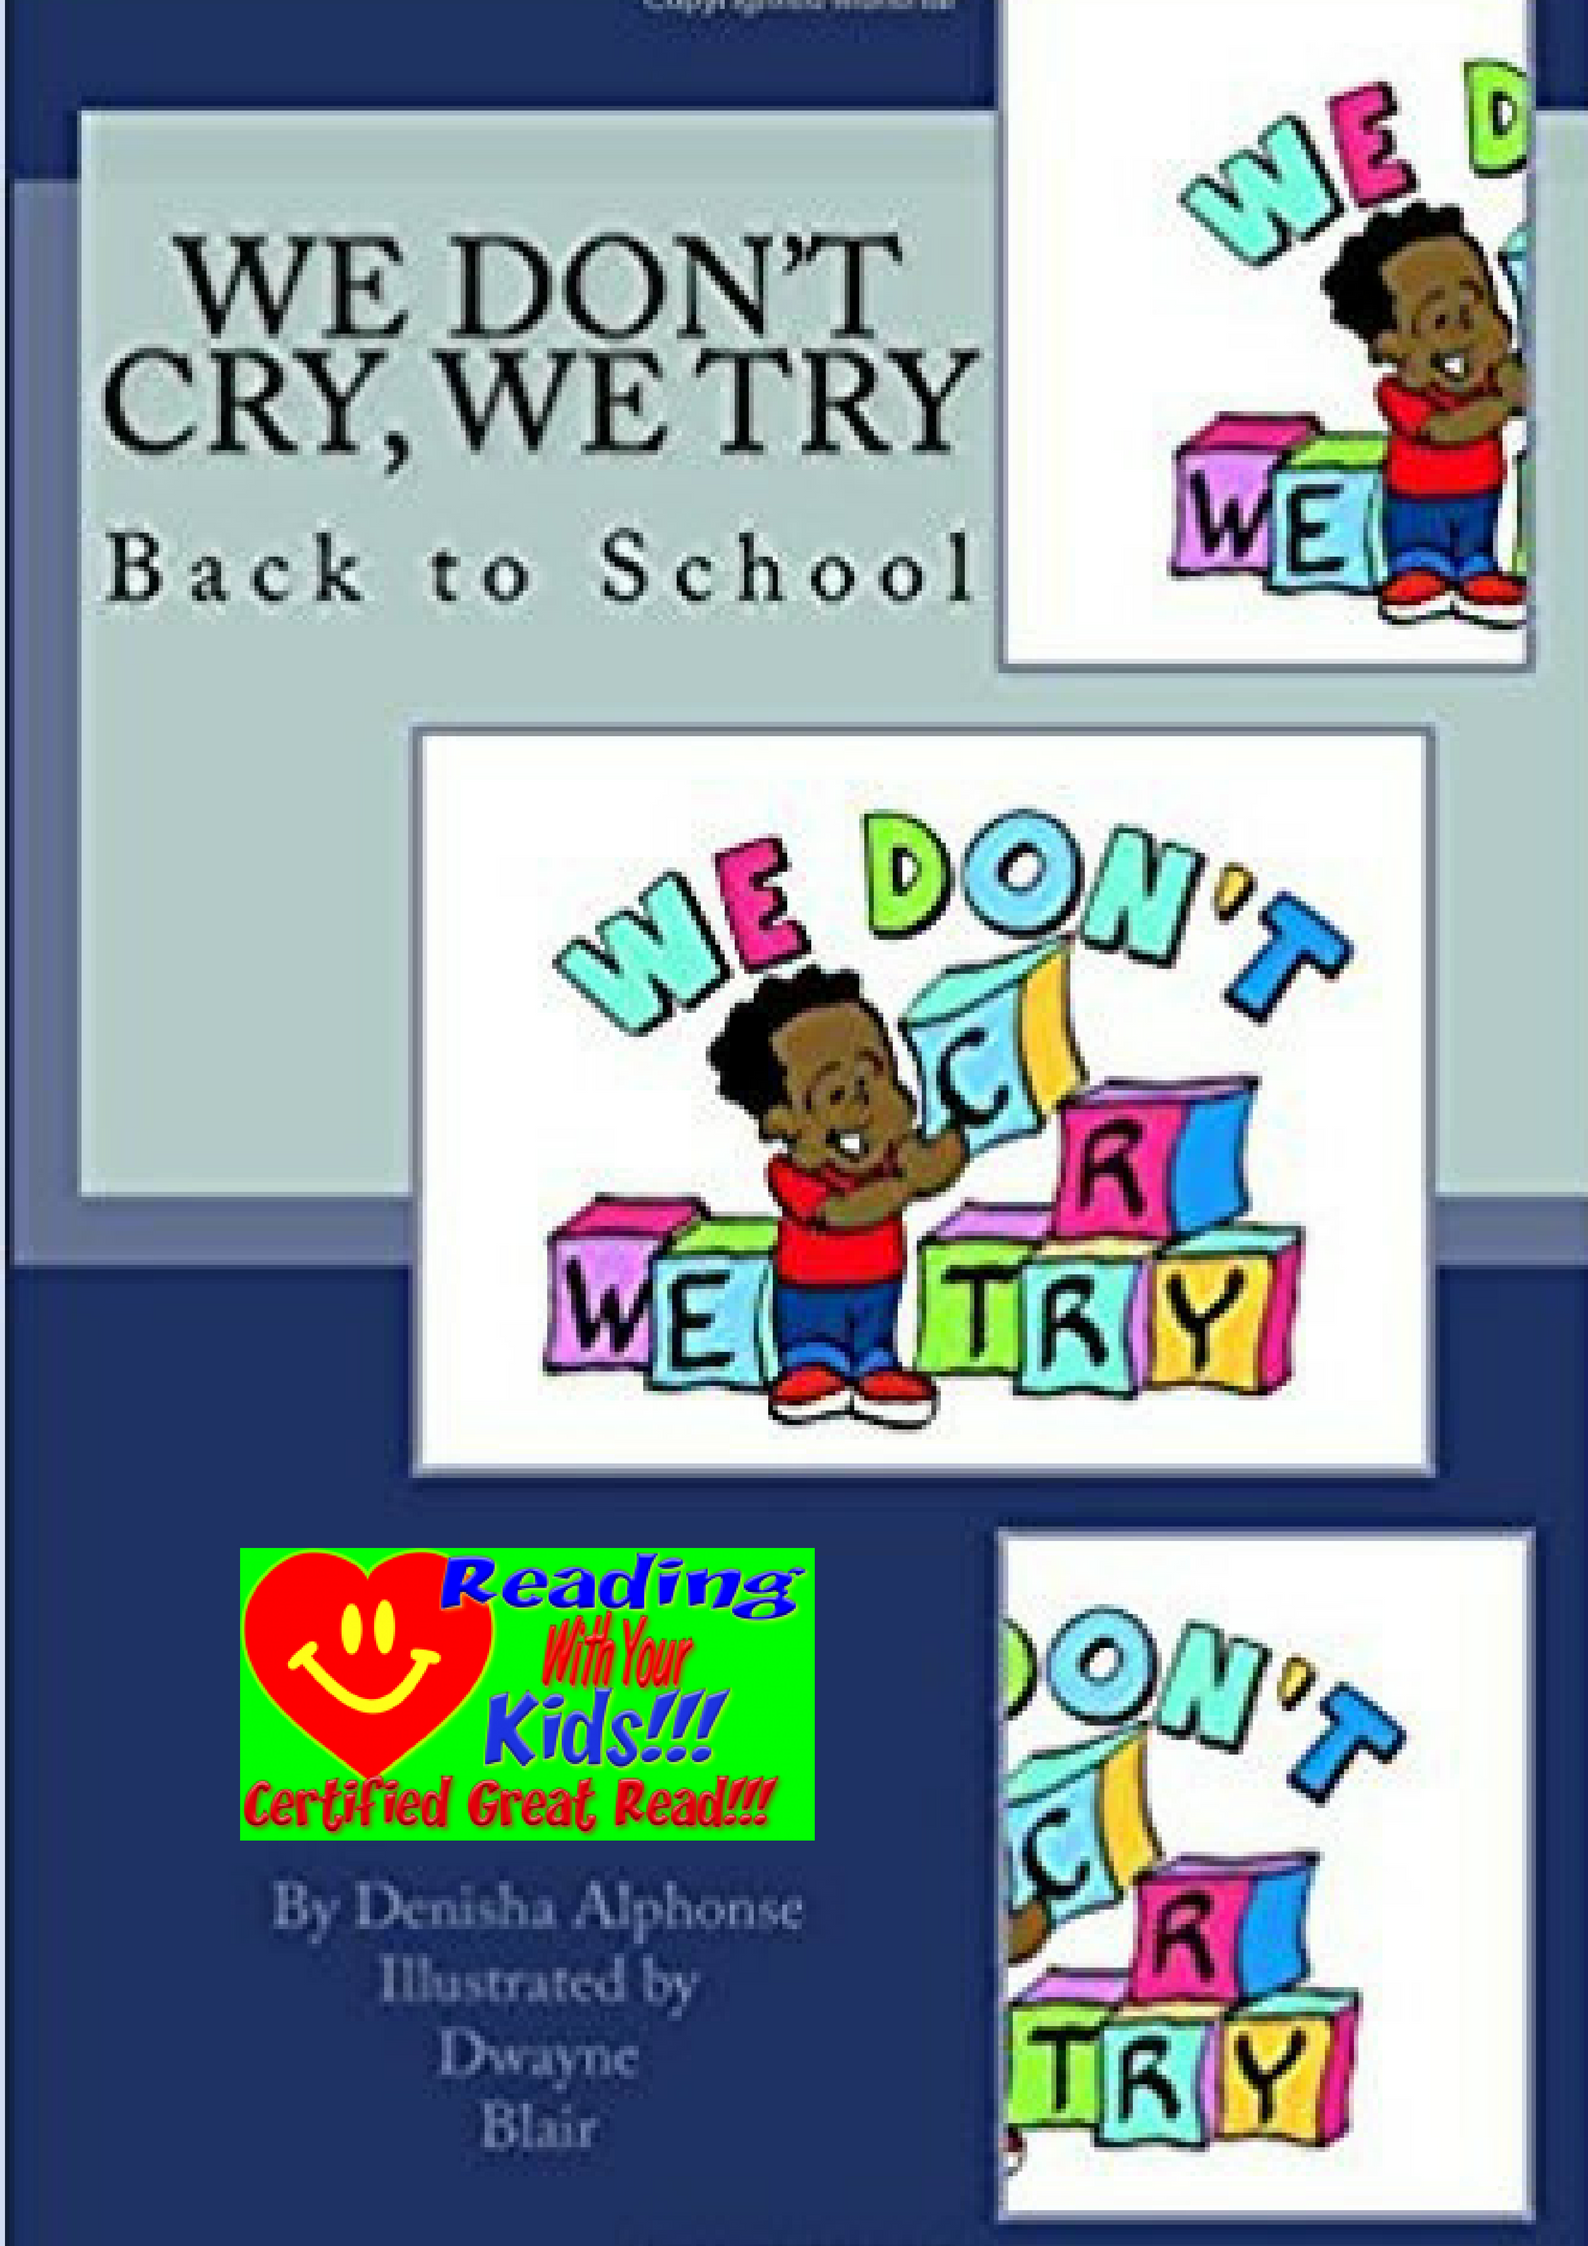 We Don't Cry, We Try: Back to School: #RWYK Great Read Certified